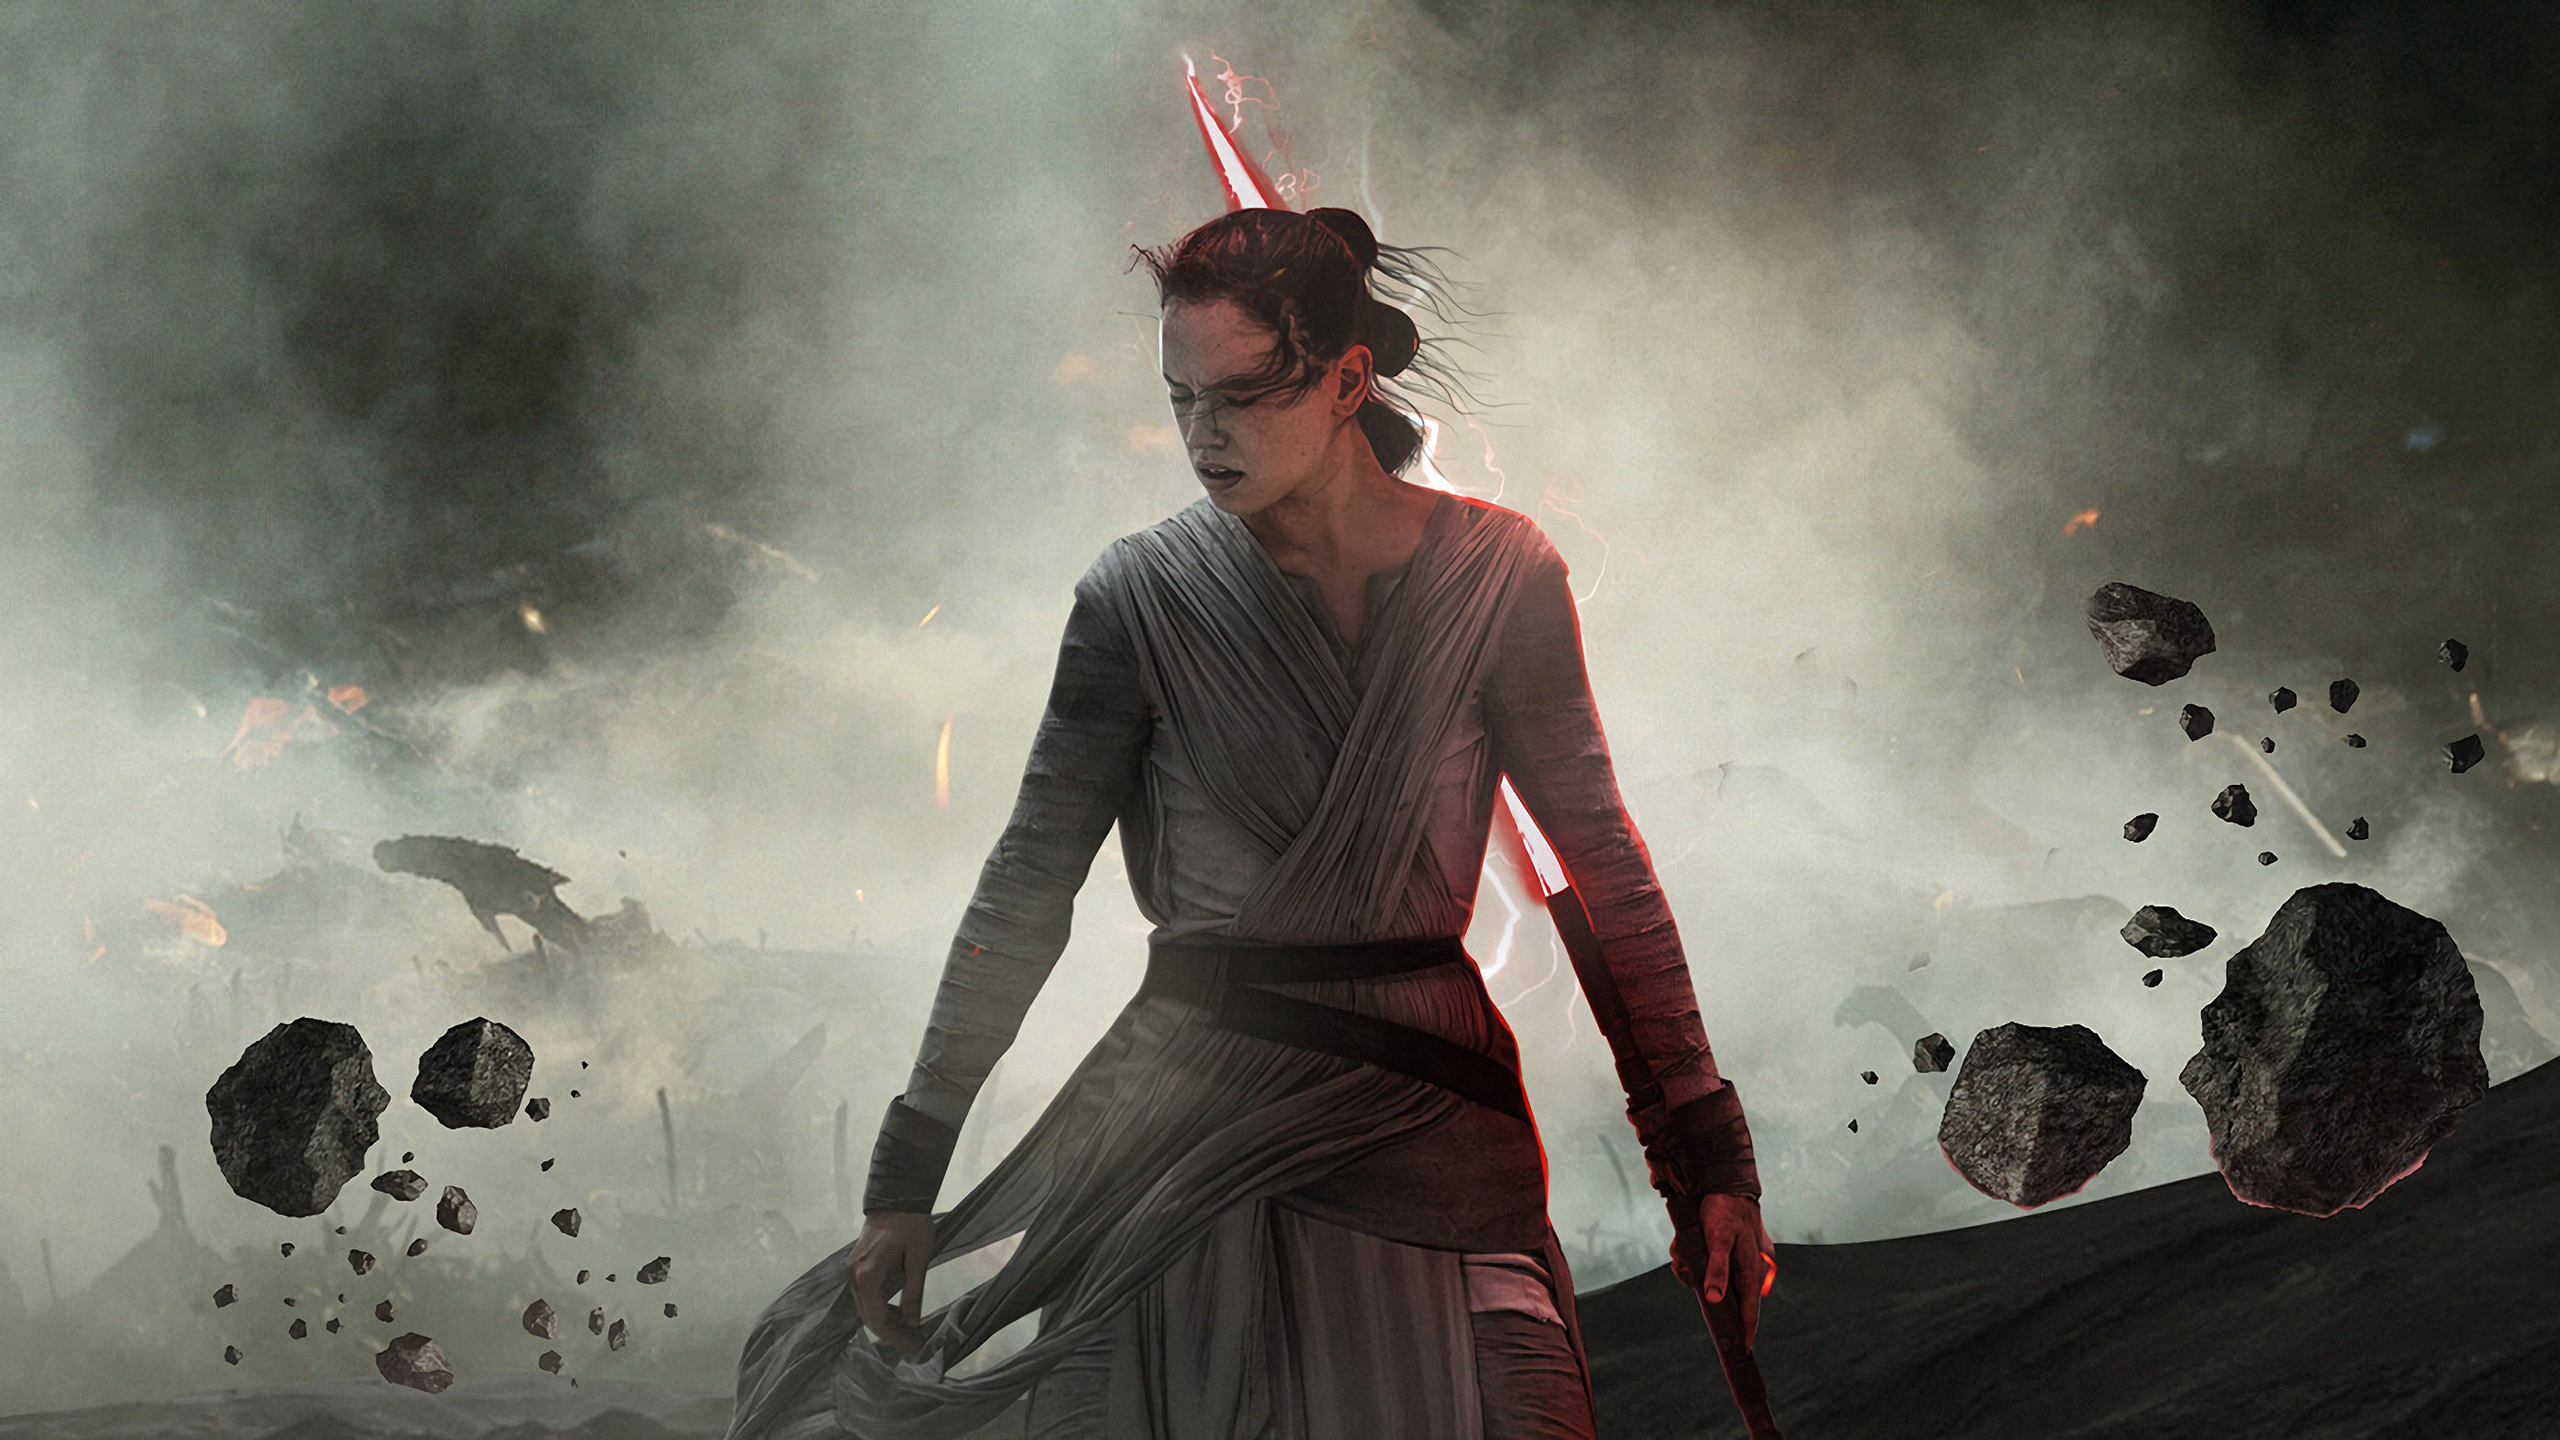 1360x768 Dark Rey Star Wars The Rise Of Skywalker Laptop Hd Hd 4k Wallpapers Images Backgrounds Photos And Pictures